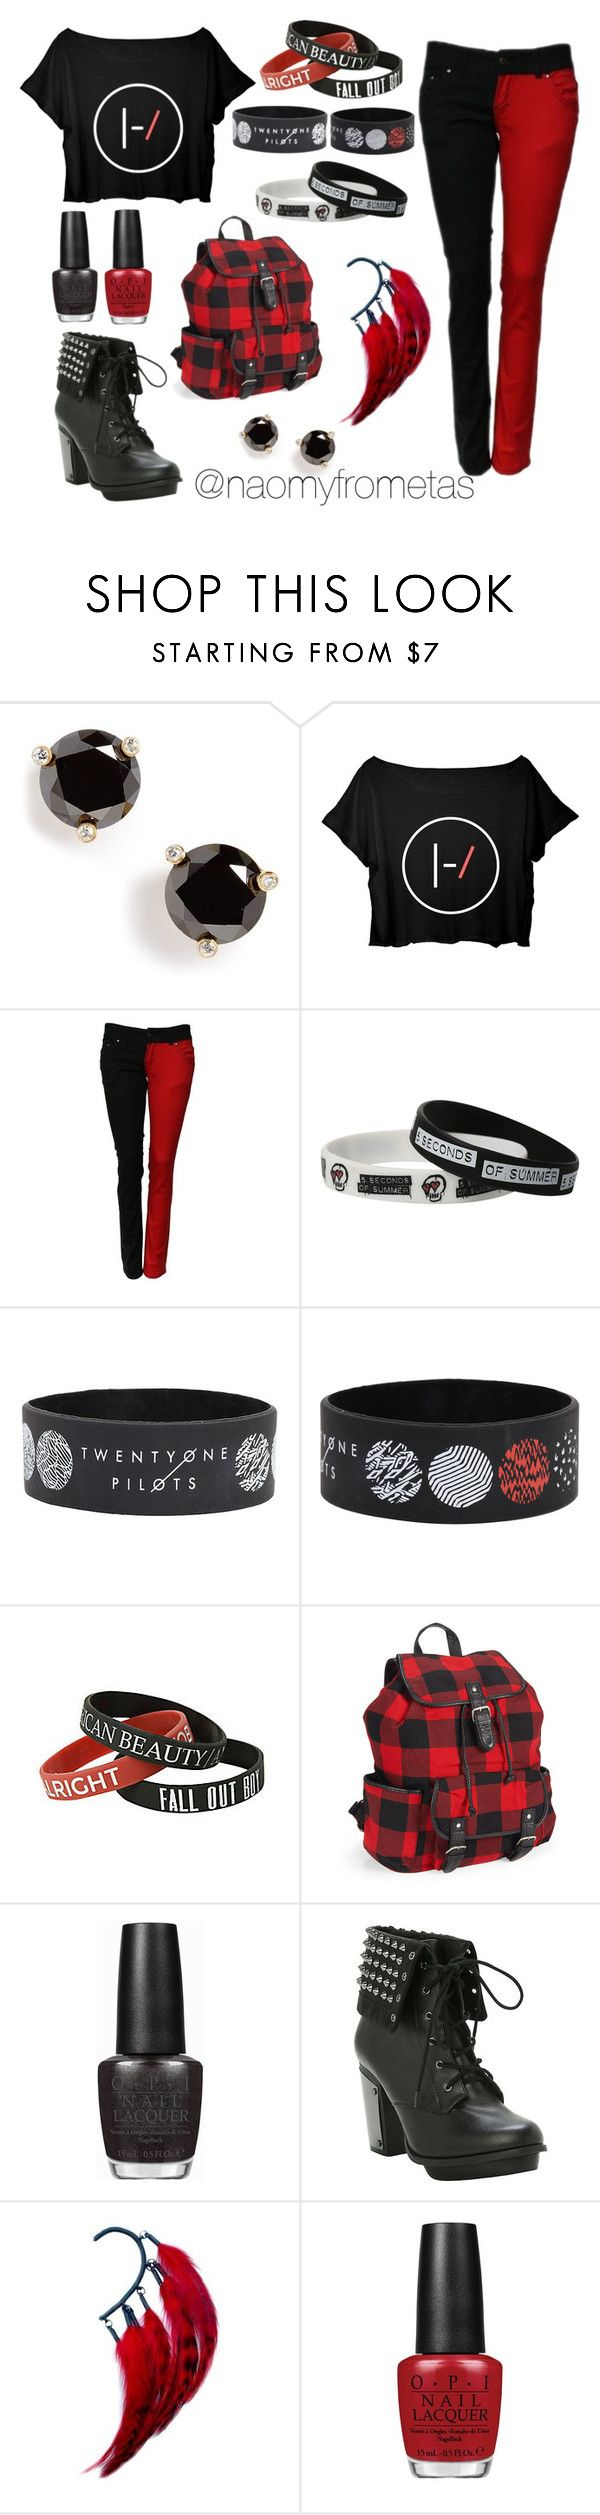 """""""Favorite Rock Bands Outfit"""" by naomyfrometas ❤ liked on Polyvore featuring Kate Spade, Aéropostale, OPI, Anni Jürgenson, black and red"""